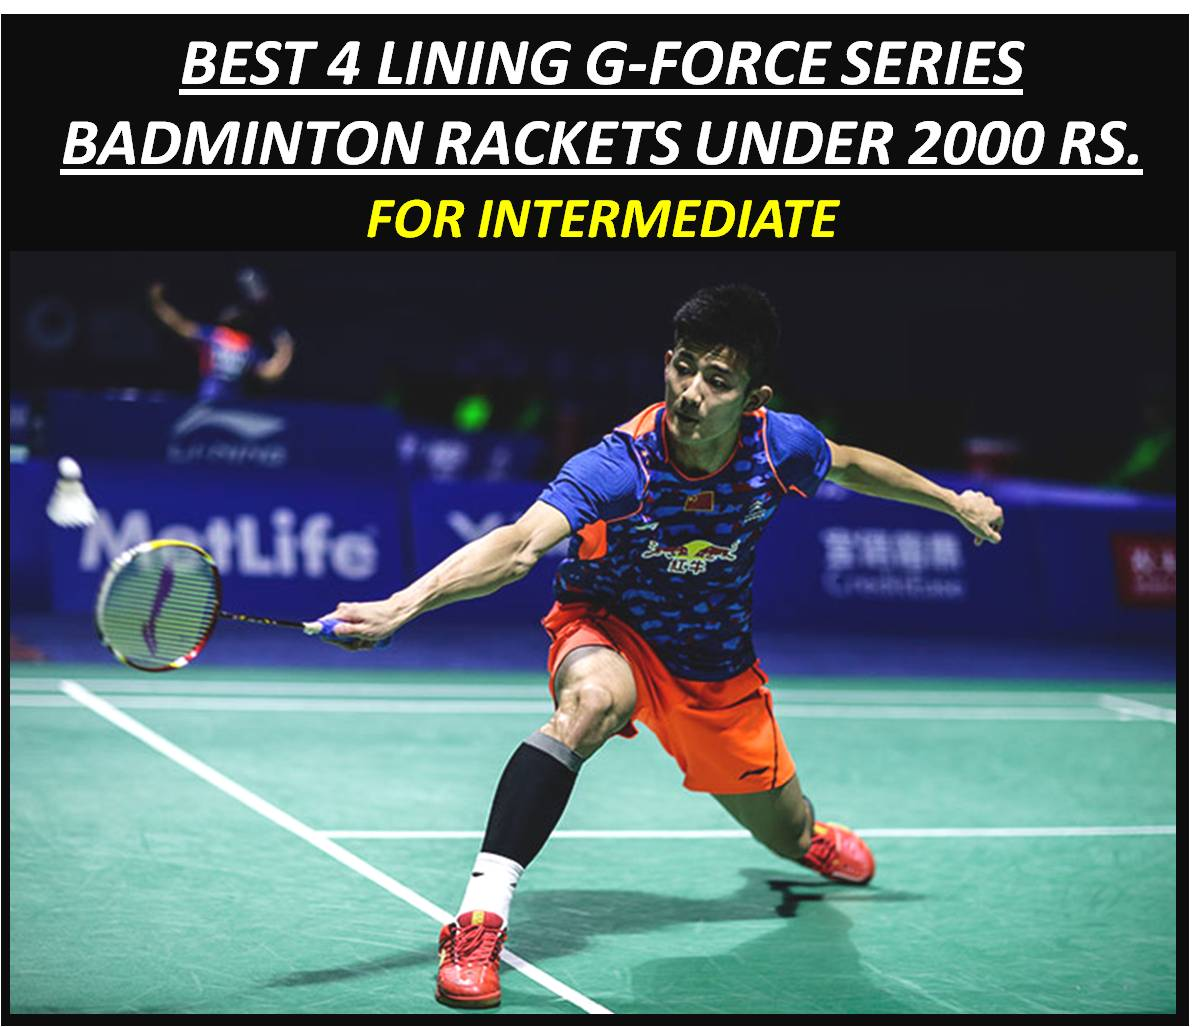 BEST 4 LINING G-FORCE SERIES RACKETS UNDER 2000 RS FOR INTERMEDIATE